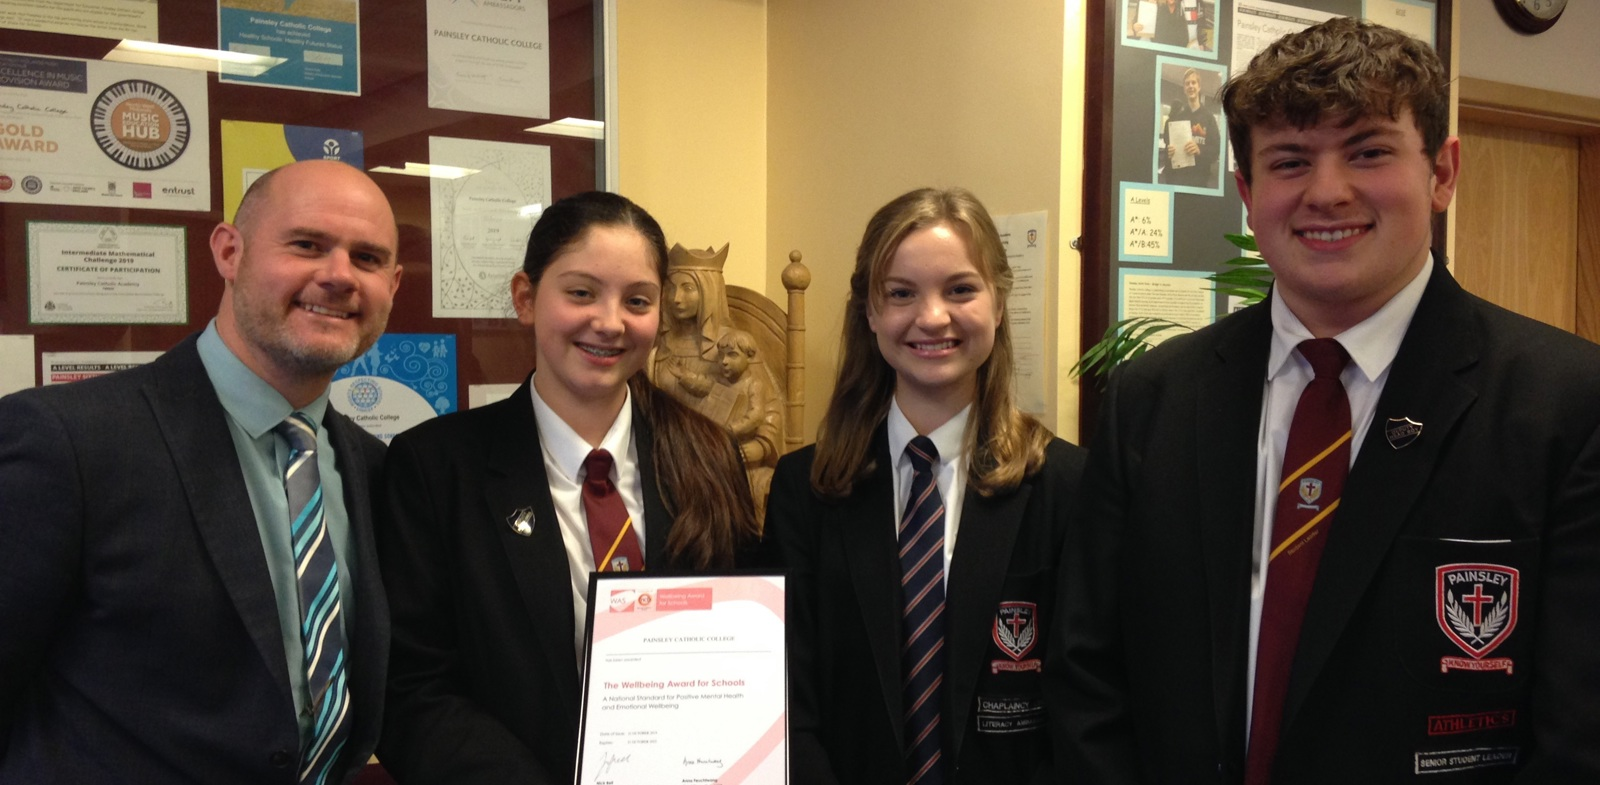 Wellbeing Award for Staffordshire school